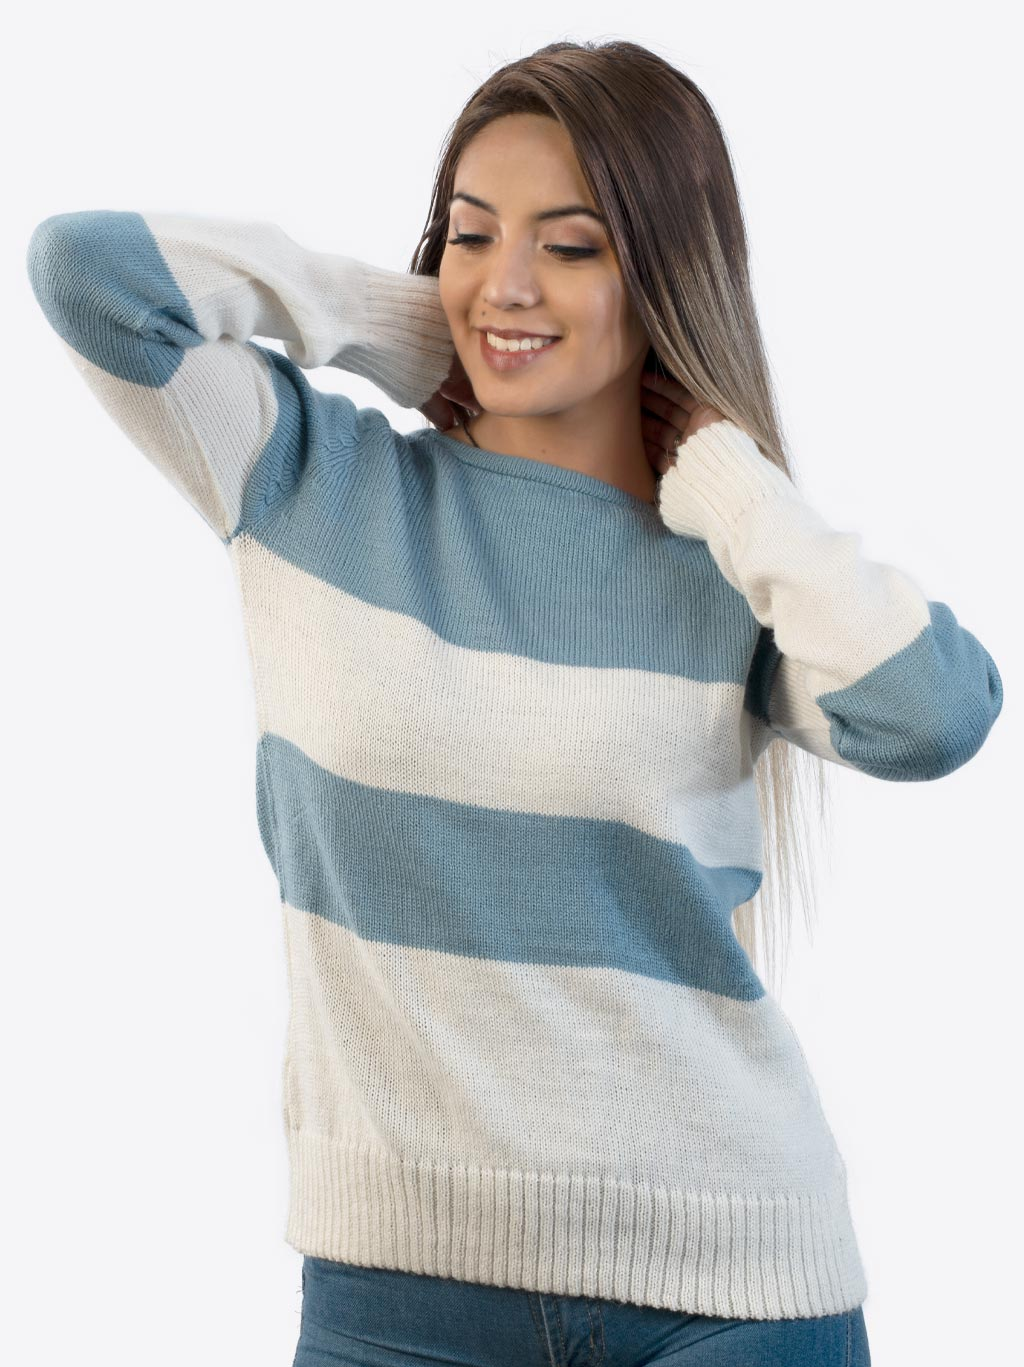 Women's Alpaca Sweater in Light Blue and White wool